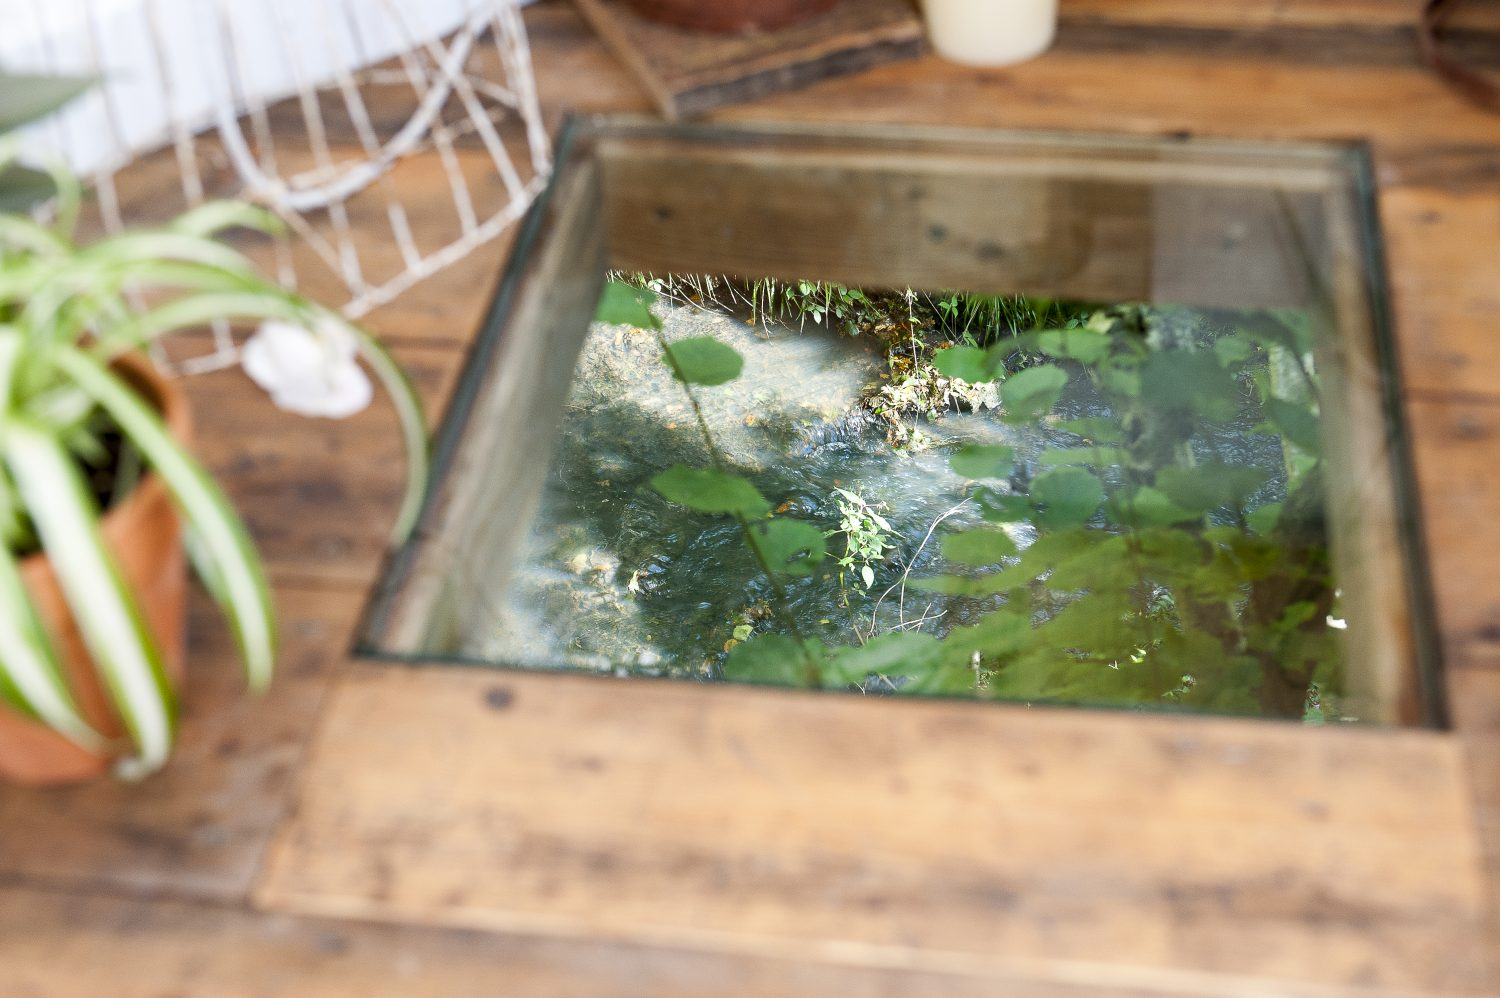 The toughened glass window in the floor of the Mushroom House is two inches thick, so you can stand on it, or lie on the floor and look down to the river below